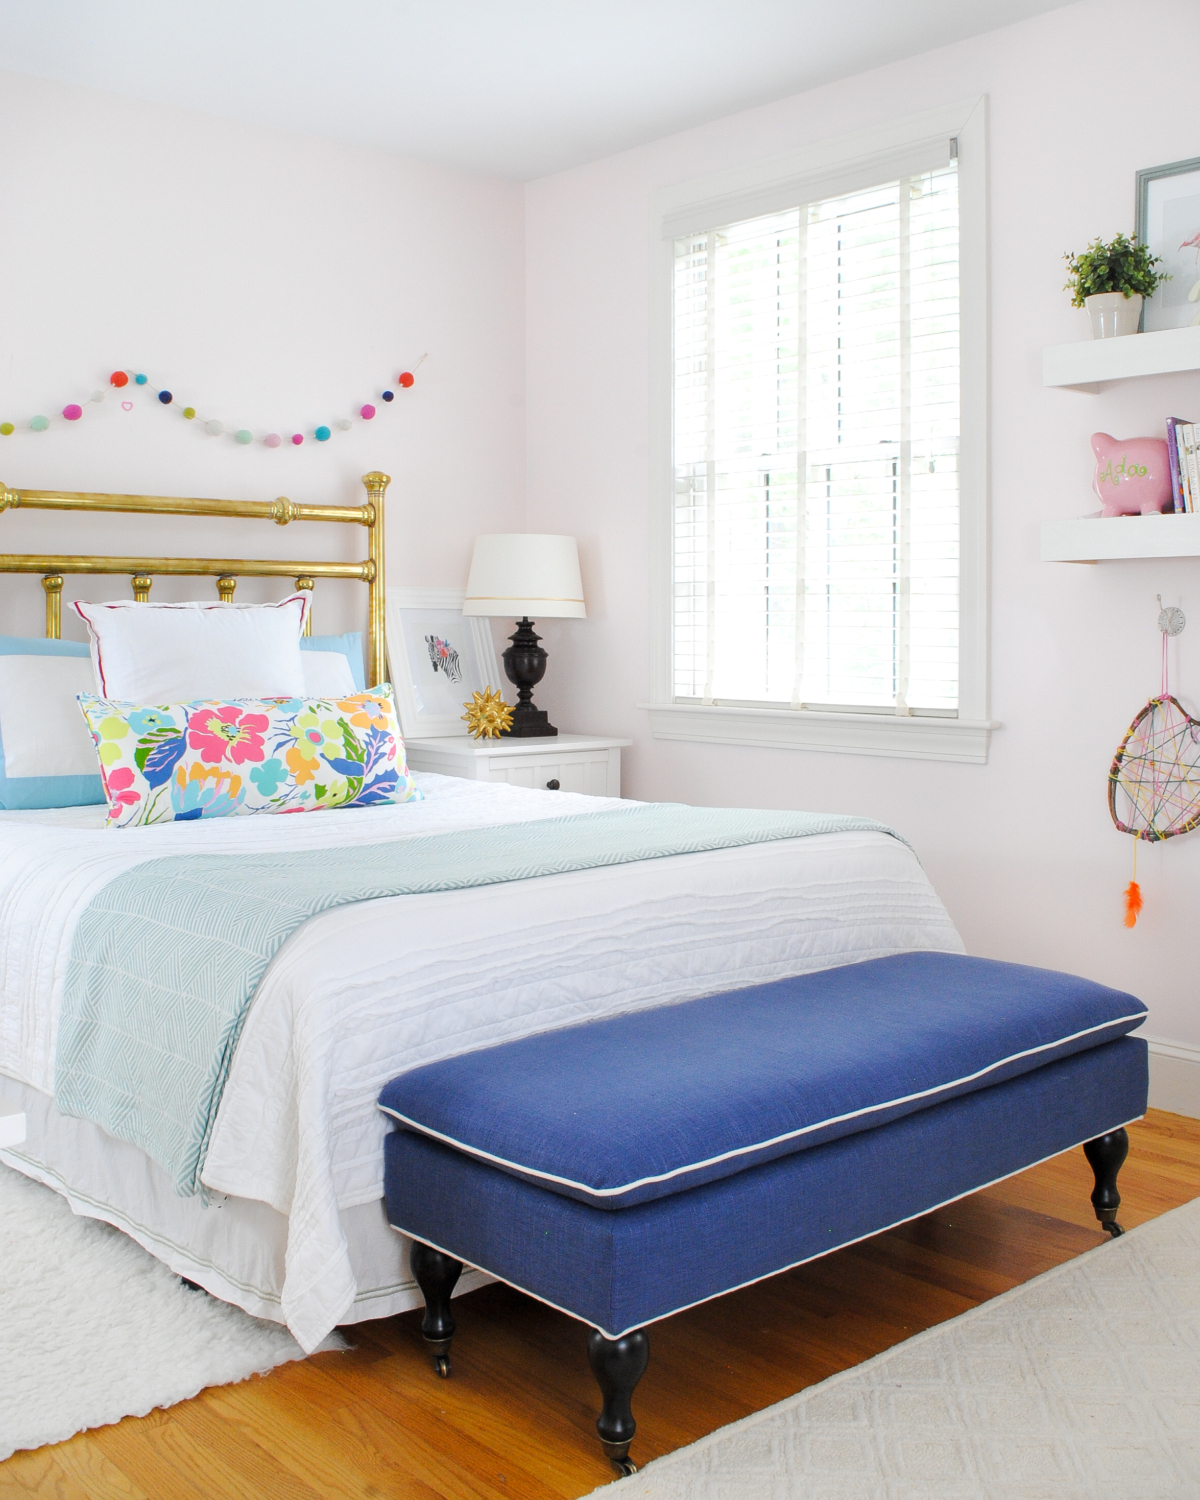 Beautiful neutral girl bedroom with navy blue, aqua, and pink accents - a bedroom to grow with a little girl.